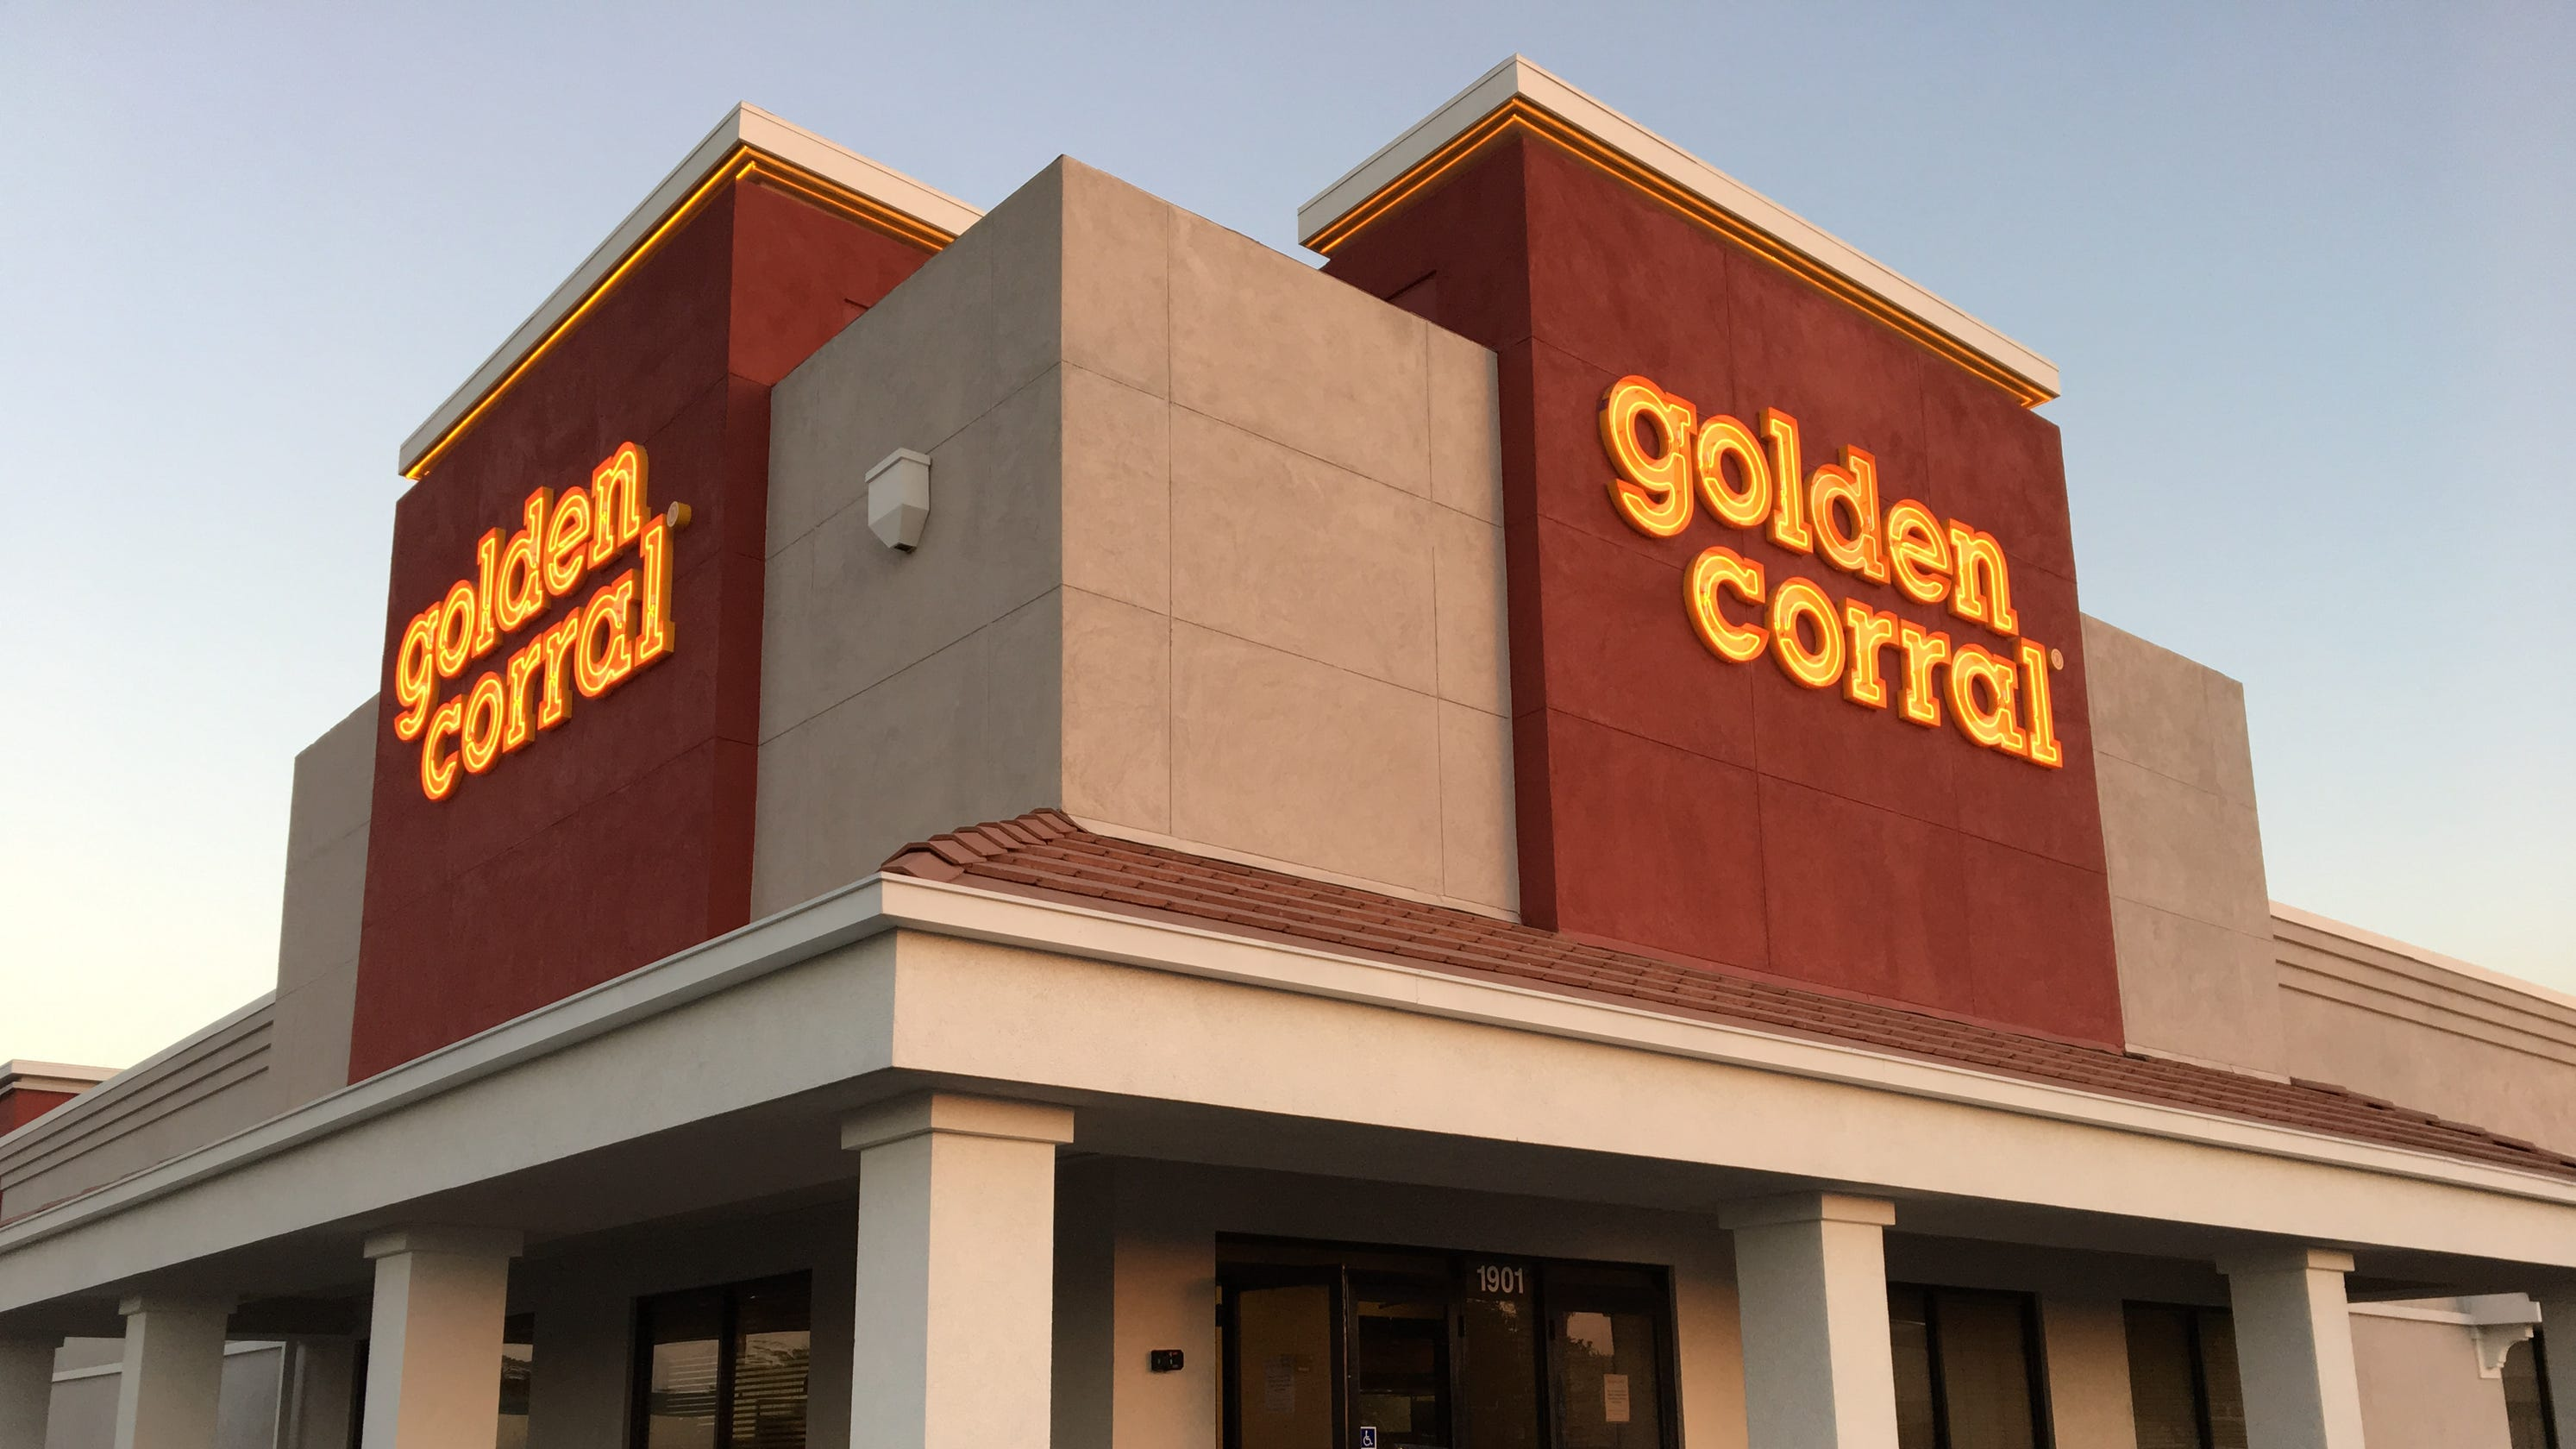 Tremendous All You Can Eat Golden Corral Restaurant To Open In Oxnard Interior Design Ideas Clesiryabchikinfo